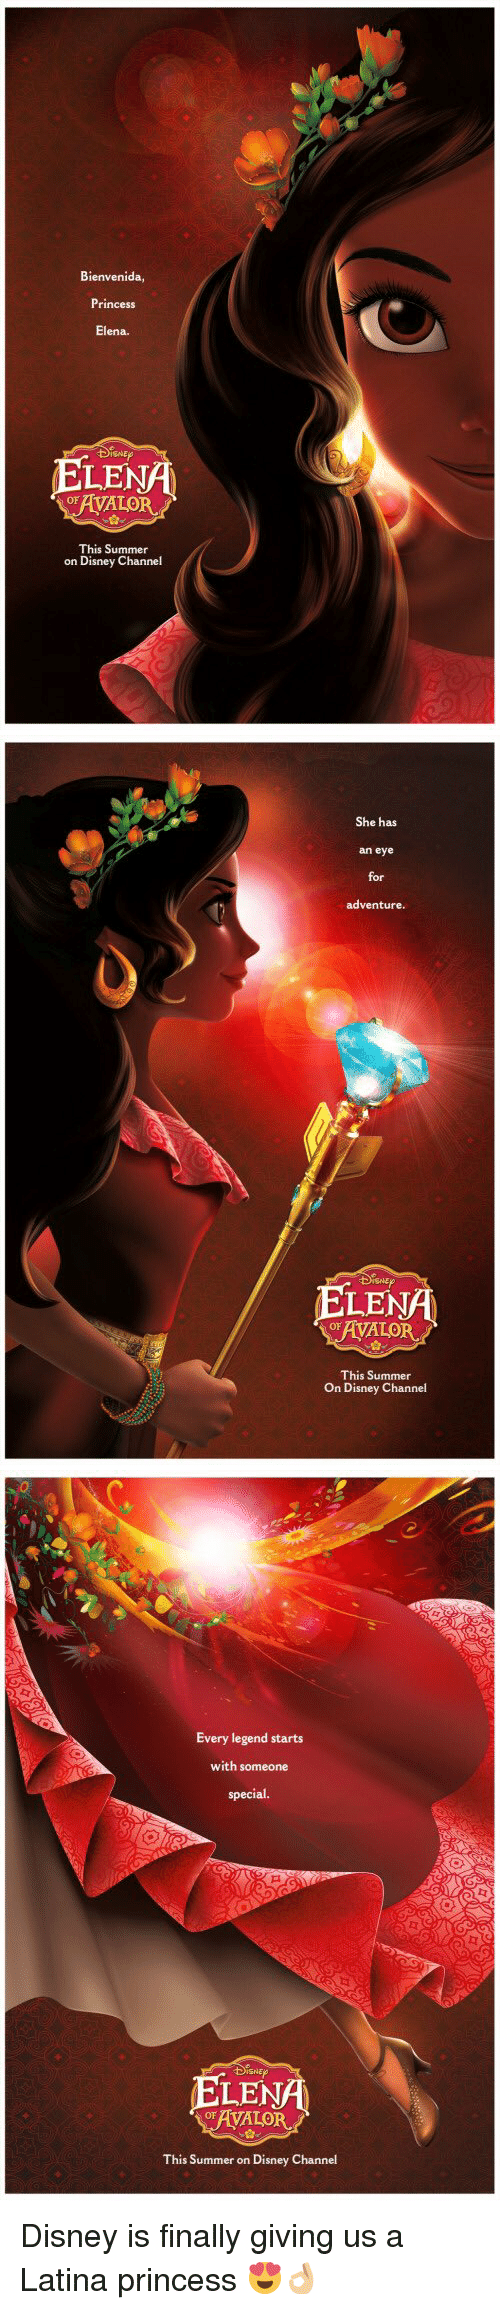 Disney Channel: Bienvenida,  Princess  Elena.  ELENA  This Summer  on Disney Channel   She has  an eye  for  adventure.  ELENA  This Summer  on Disney Channel   Every legend starts  with someone  special.  LEN  ODAVALOR  This summer on Disney Channel Disney is finally giving us a Latina princess 😍👌🏼